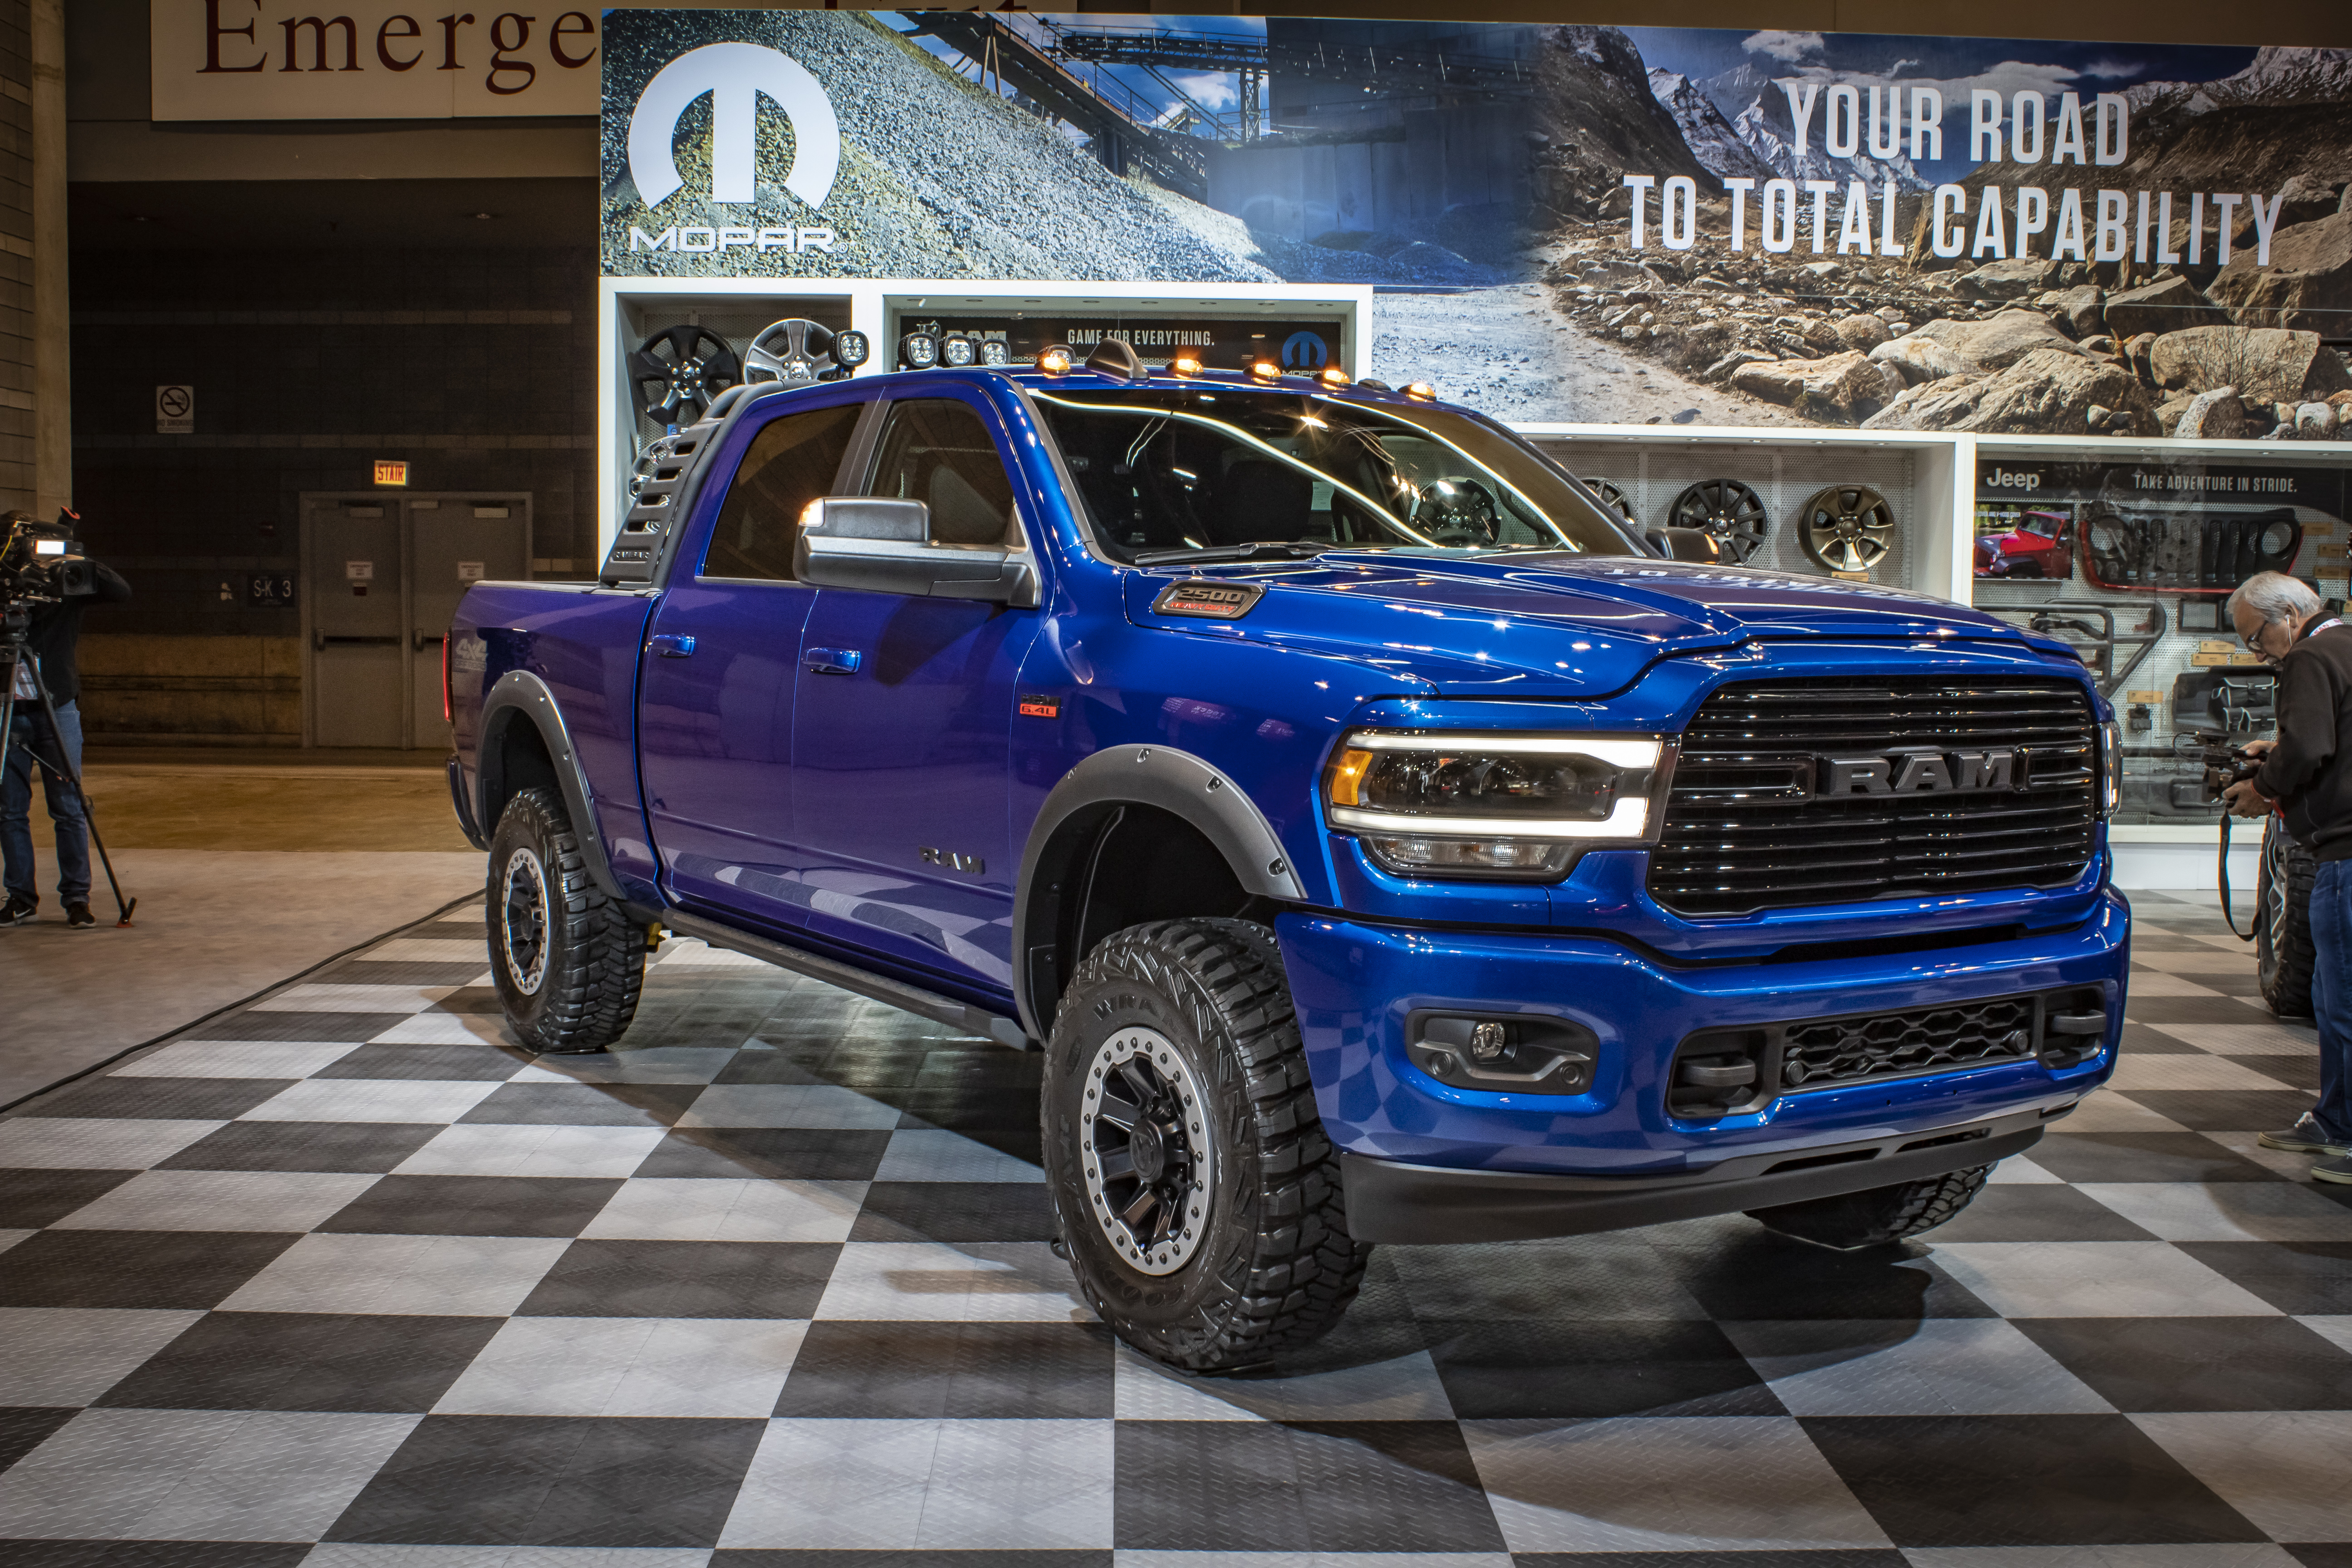 2019 ram 2500 heavy duty by mopar pictures  photos  wallpapers